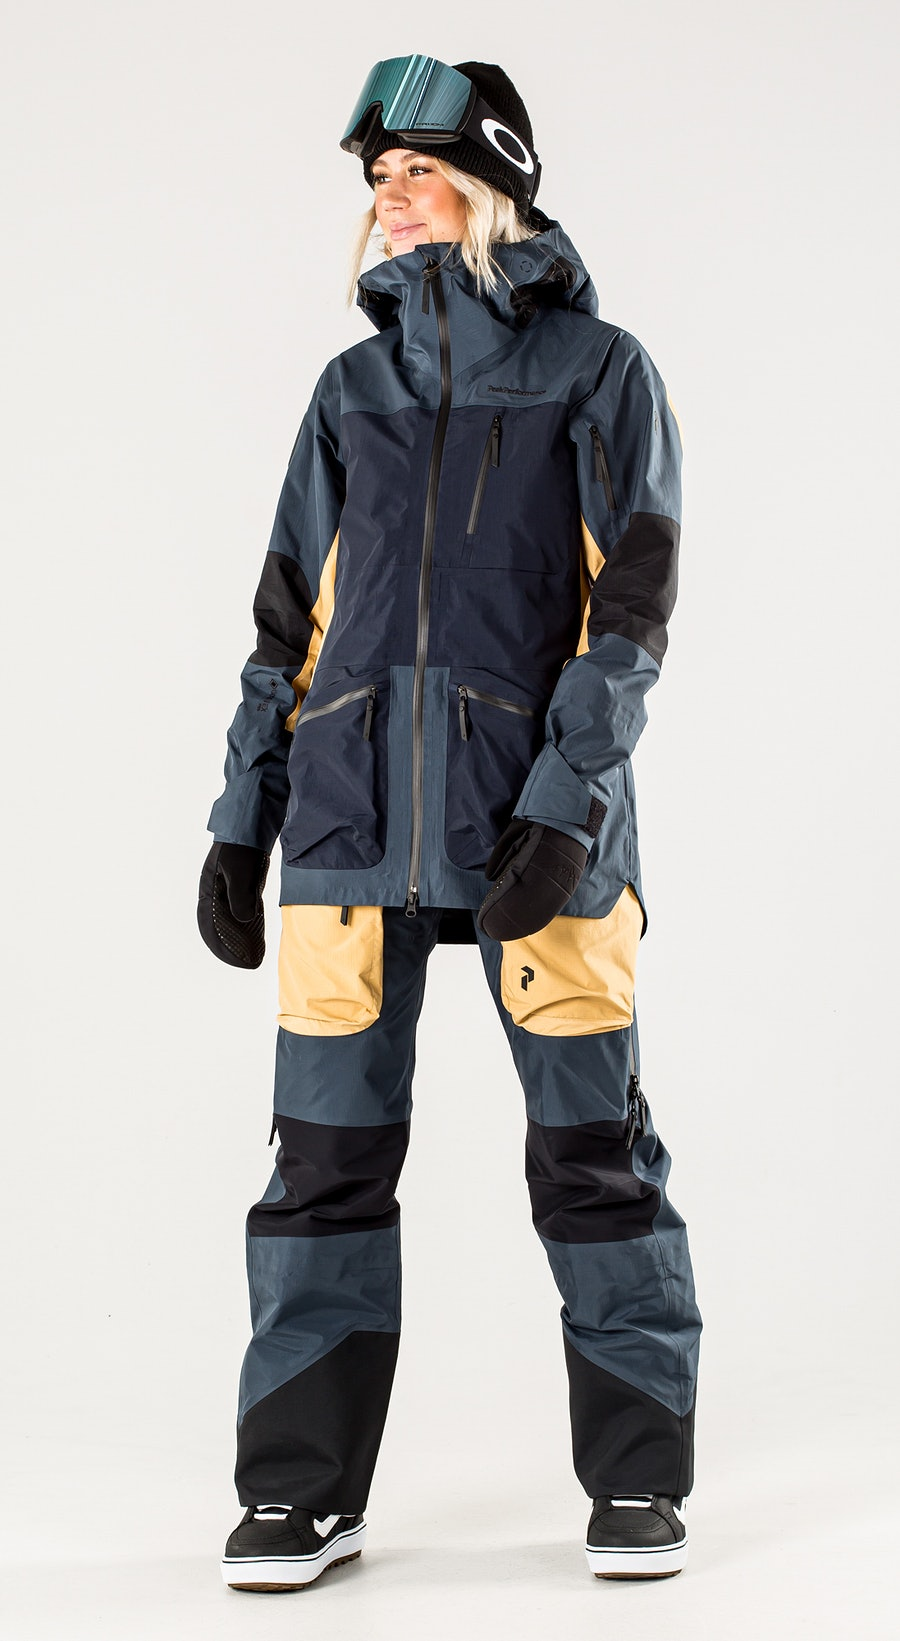 Peak Performance Vertical Pro Blue Steel Snowboardkläder Multi